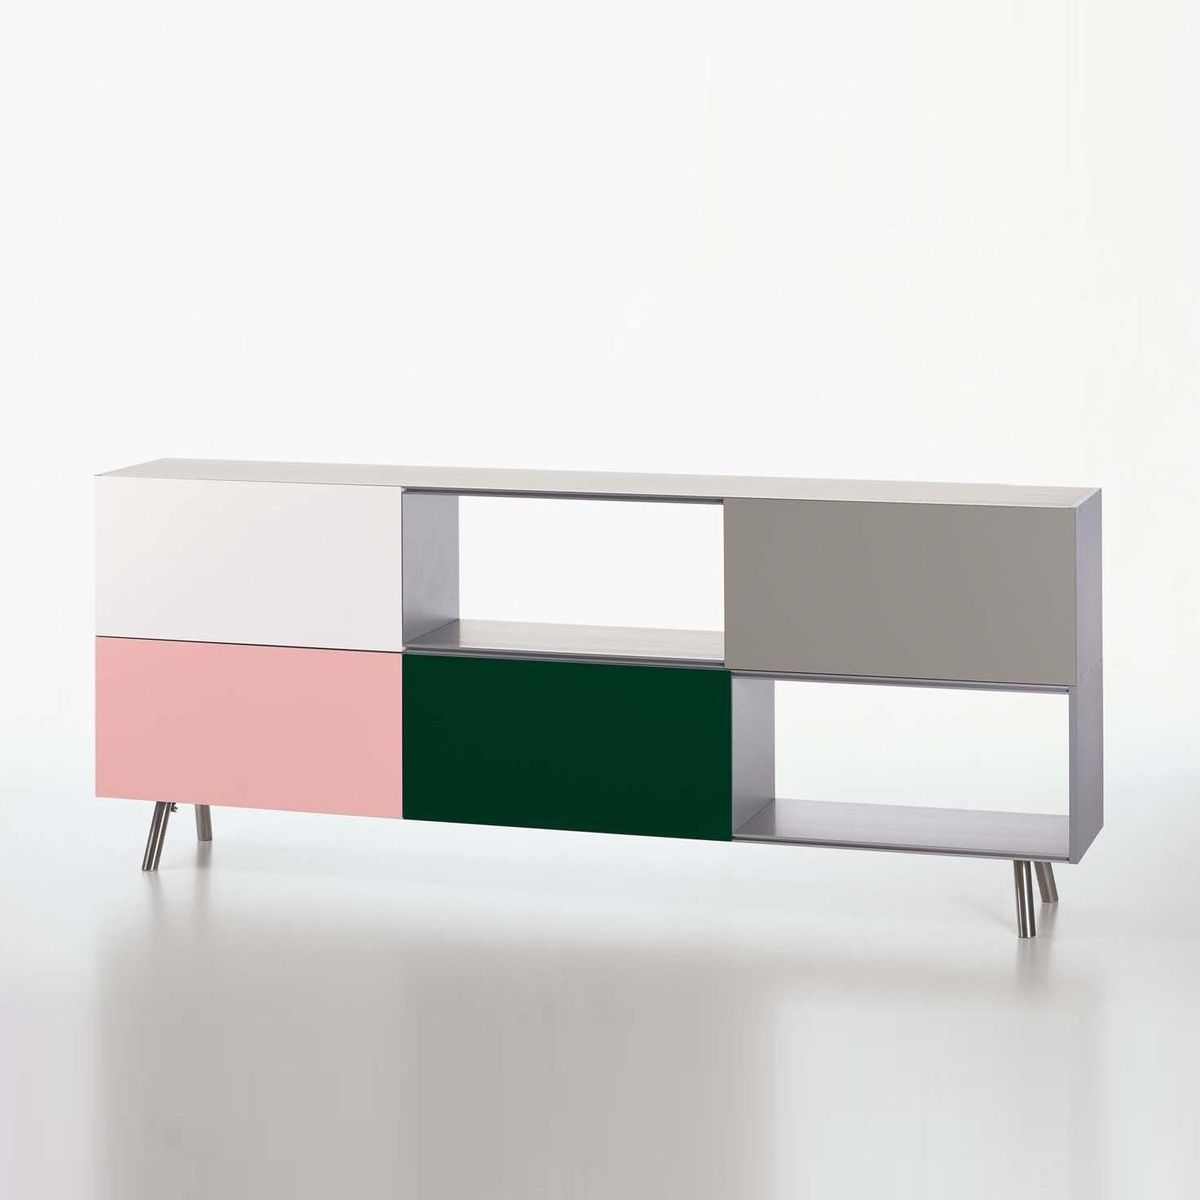 Vitra kast 2 oh sideboard vitra for Sideboard vitra